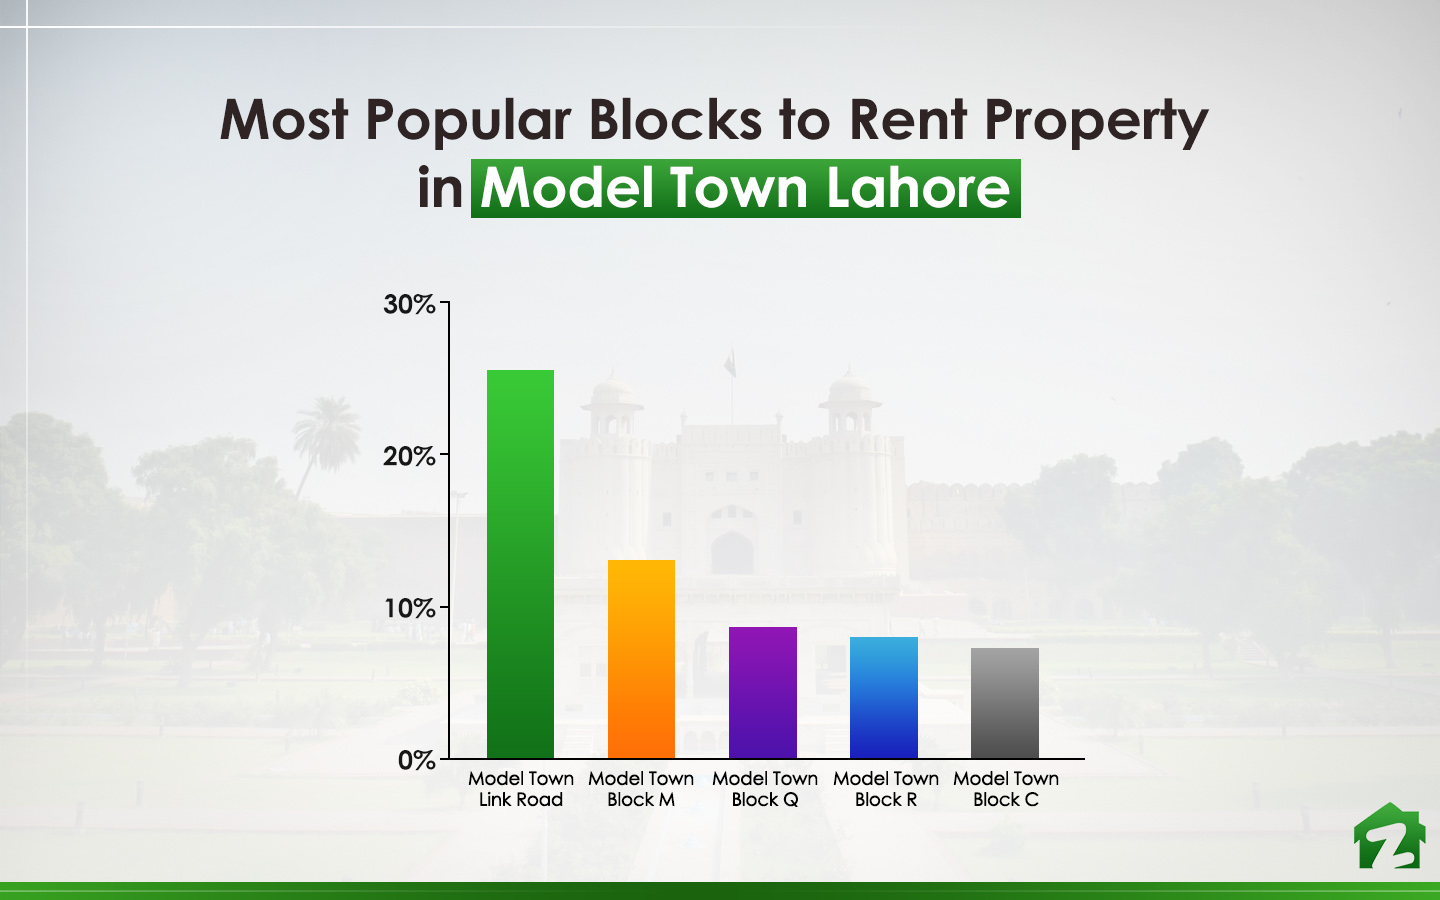 Most Popular Blocks to Rent Property in Model Town, Lahore